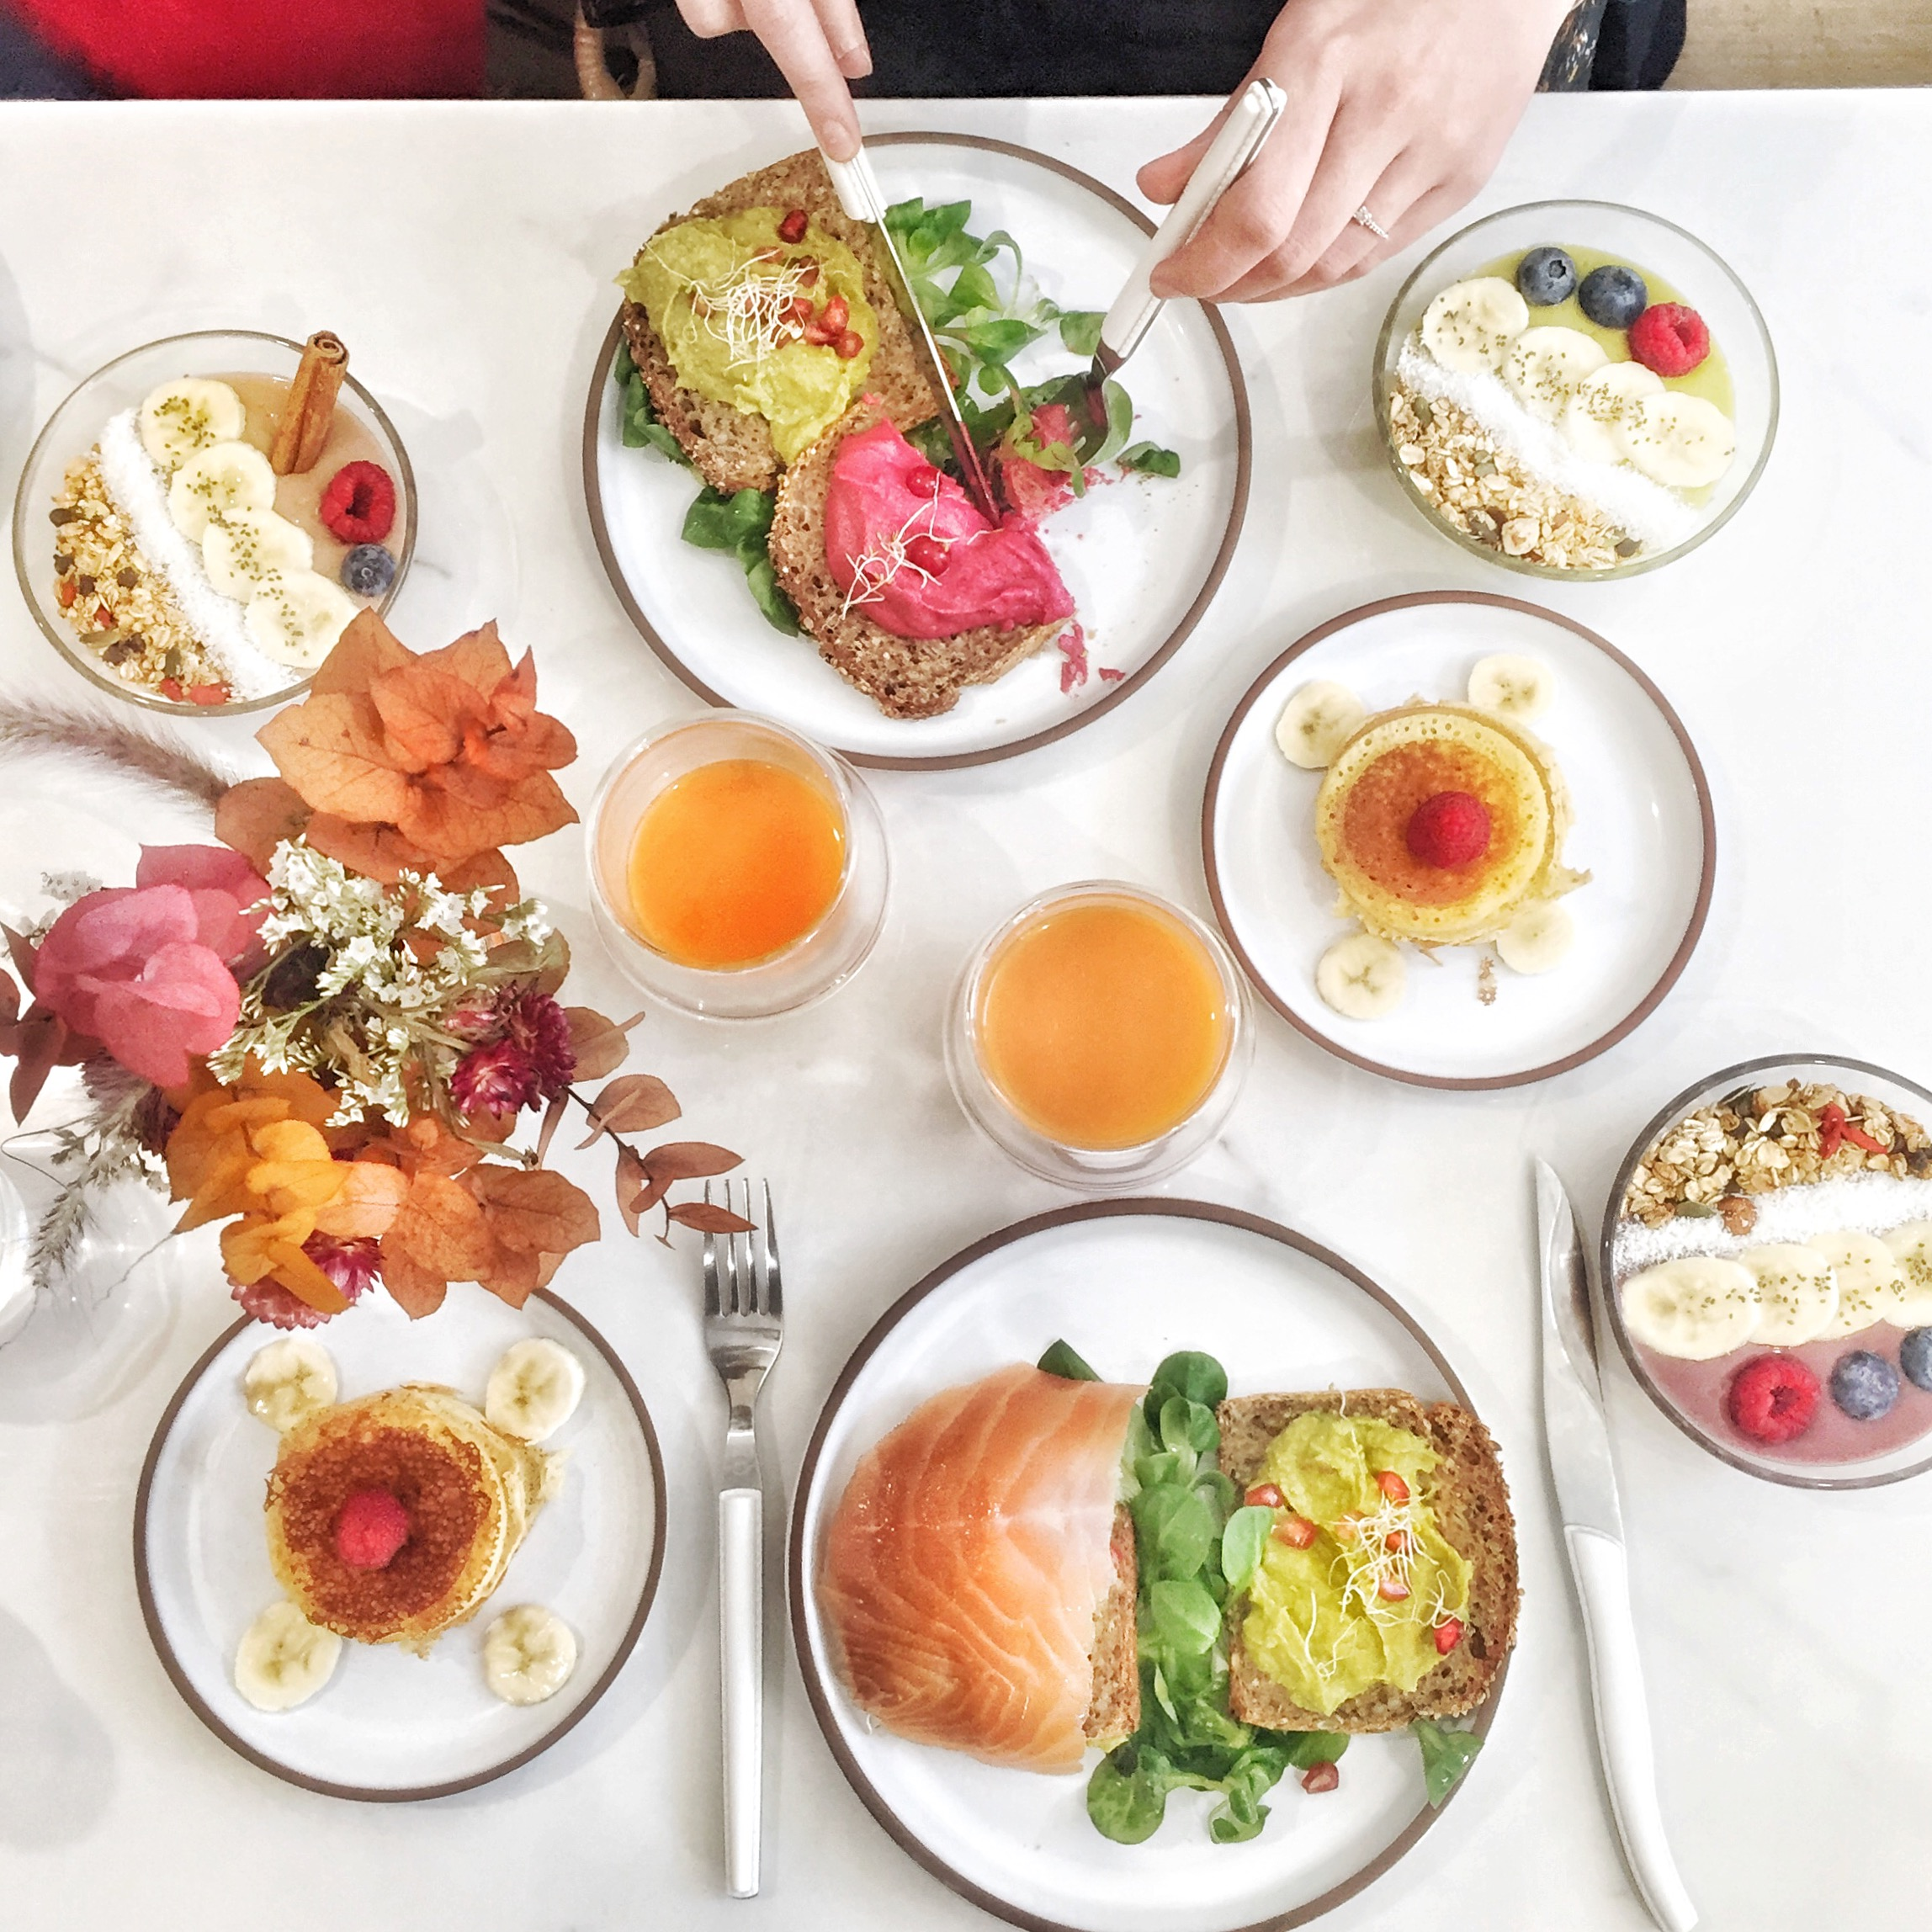 contrats brunch à Bordeaux - blog Camille In Bordeaux